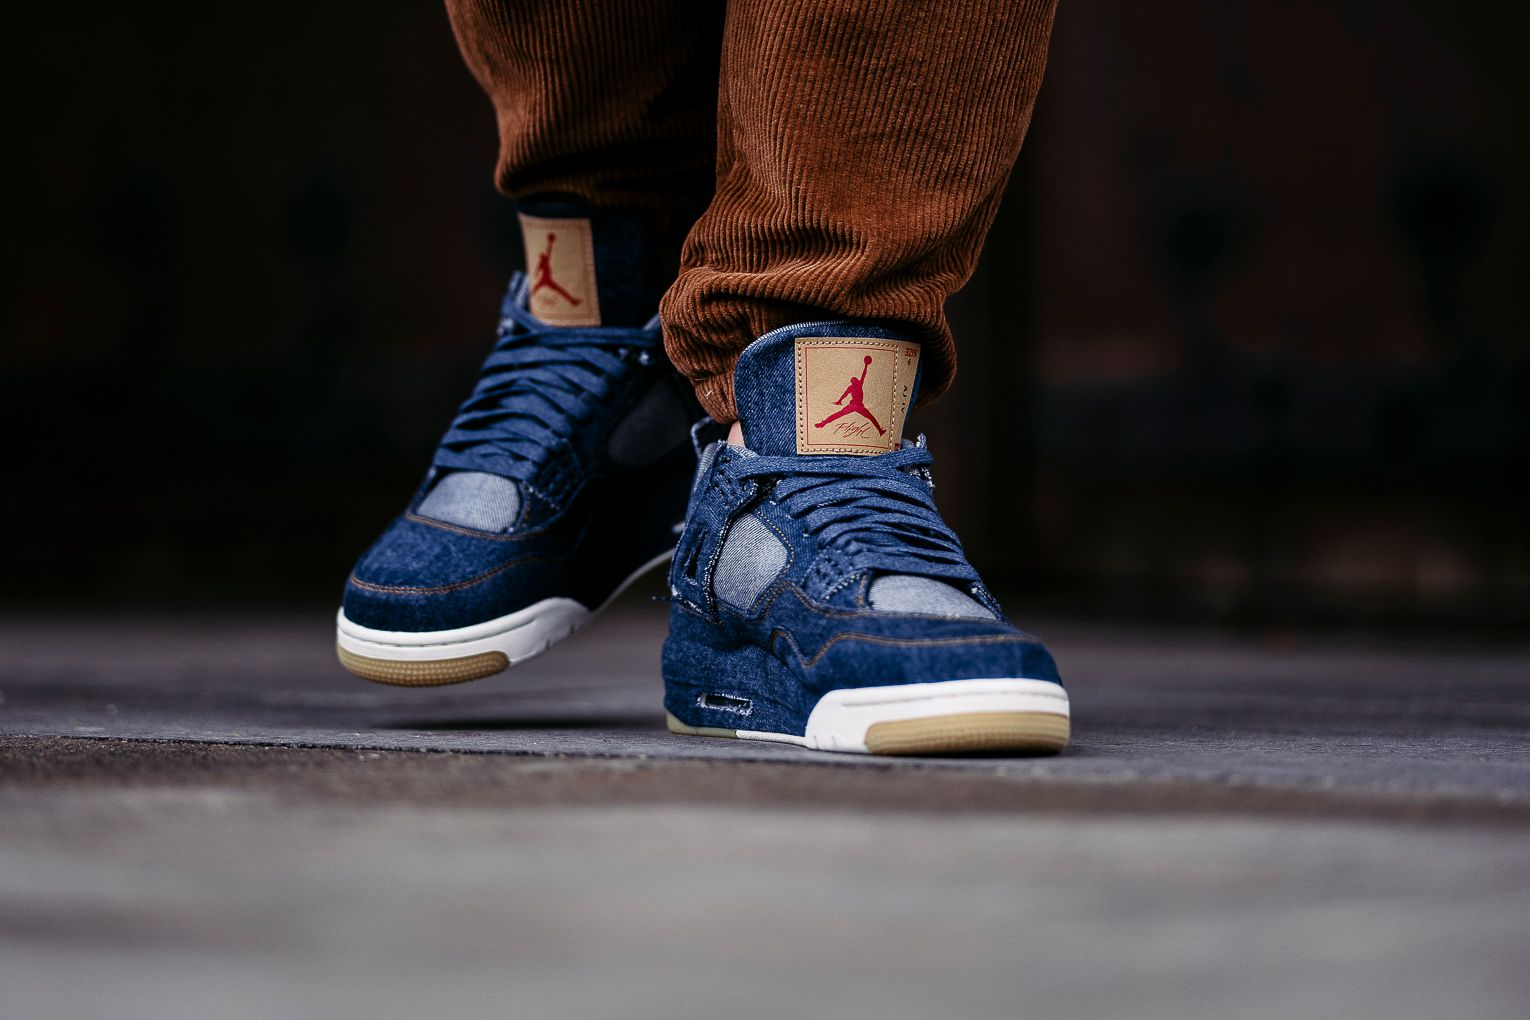 e09bce9d625b7 An On-Feet Look At The Levi s x Air Jordan 4 Denim